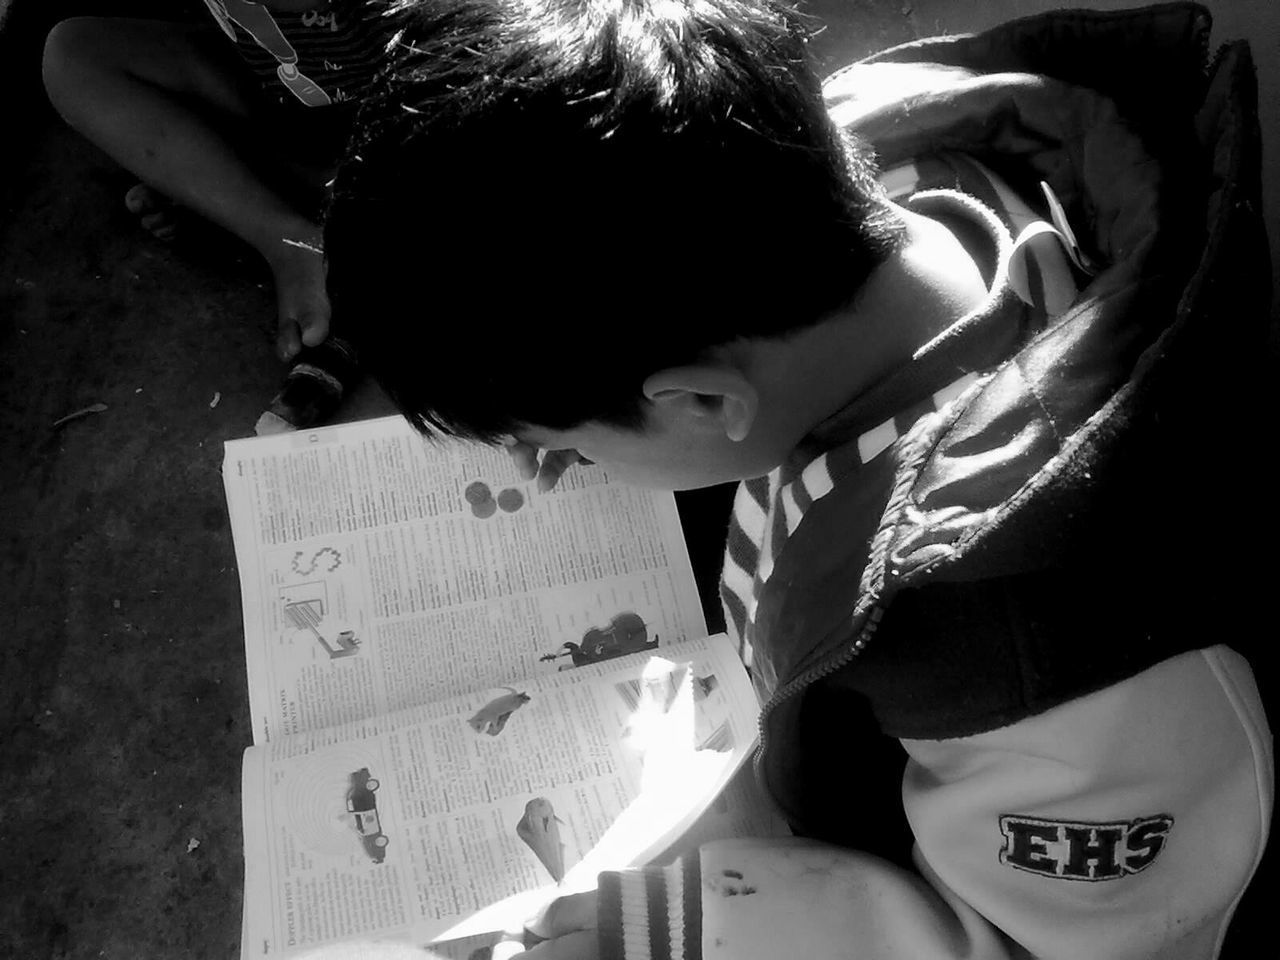 Kidsphotography Studying Happiness Kids Books Gettin Involved Blackandwhite Black & White